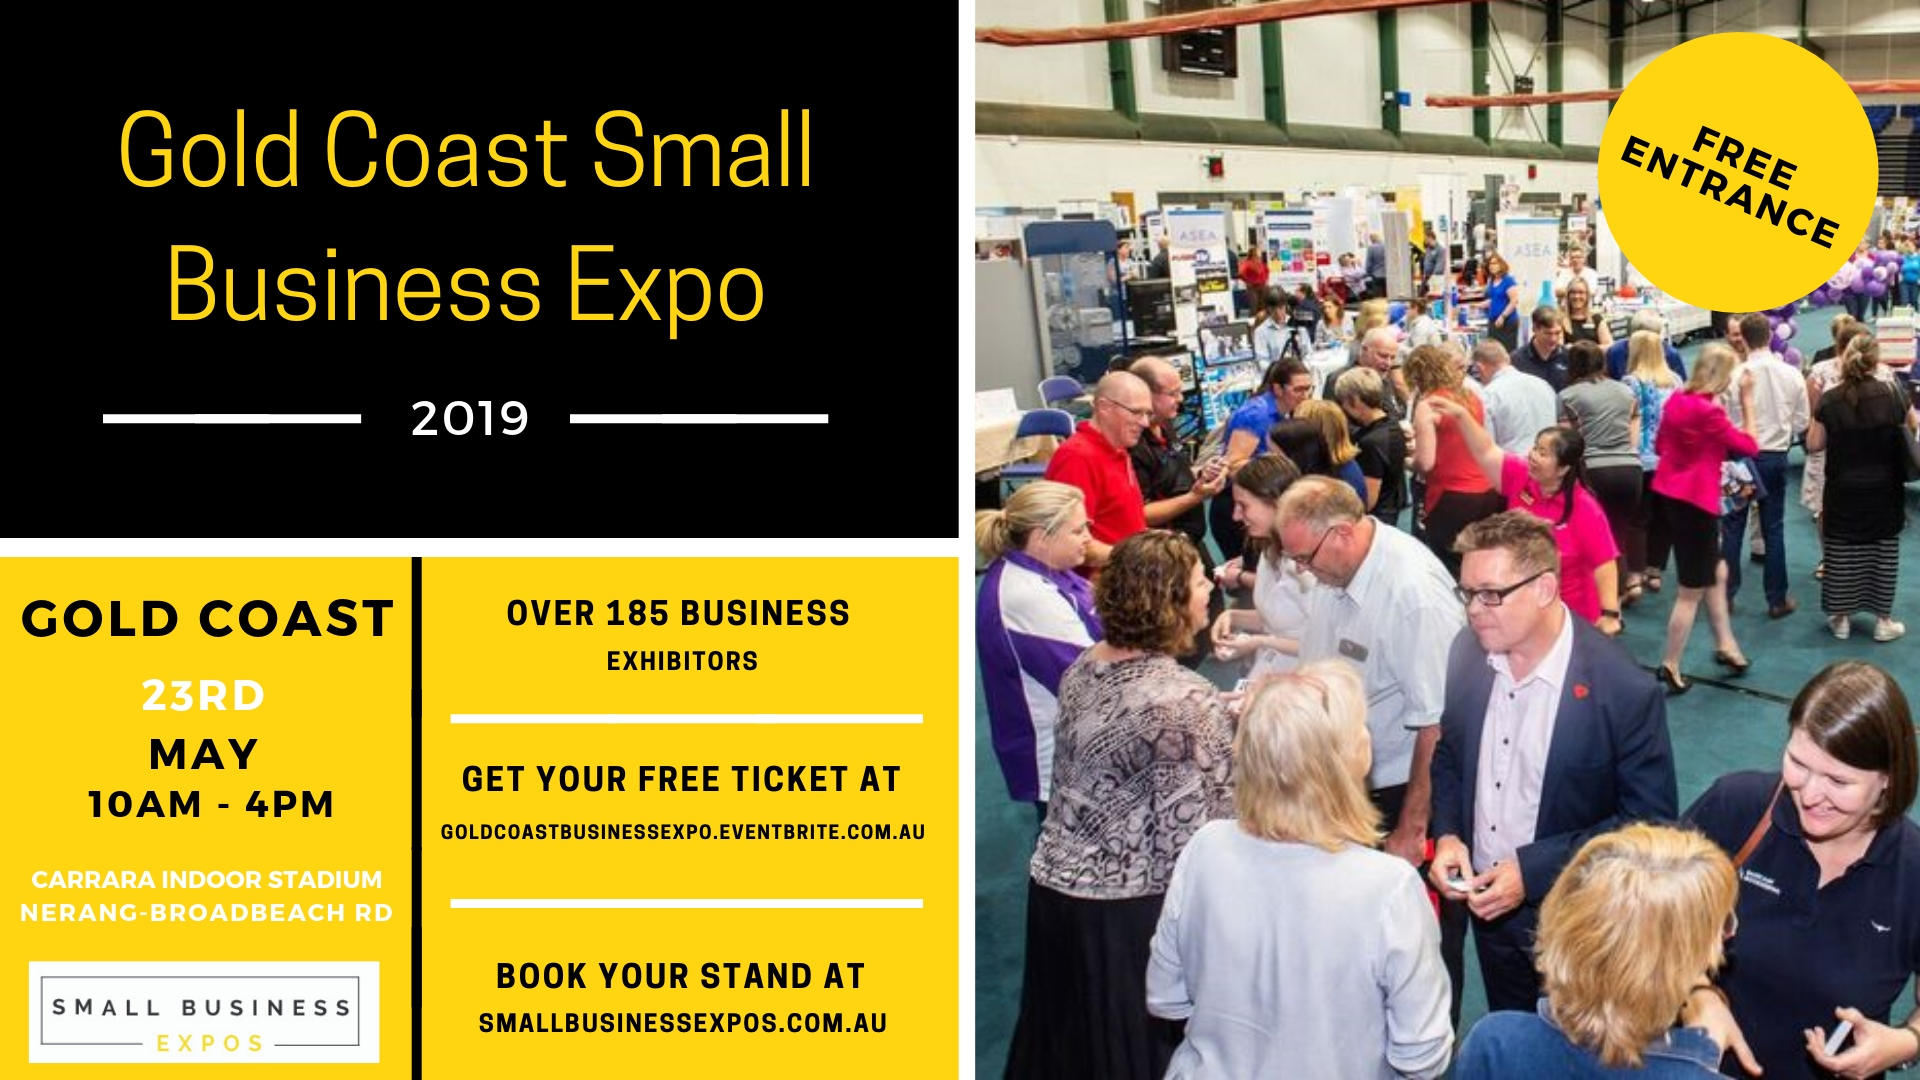 Business Expos | Brisbane | Gold Coast | Small Business Expos | Gold Coast Expo Facebook Event (2)